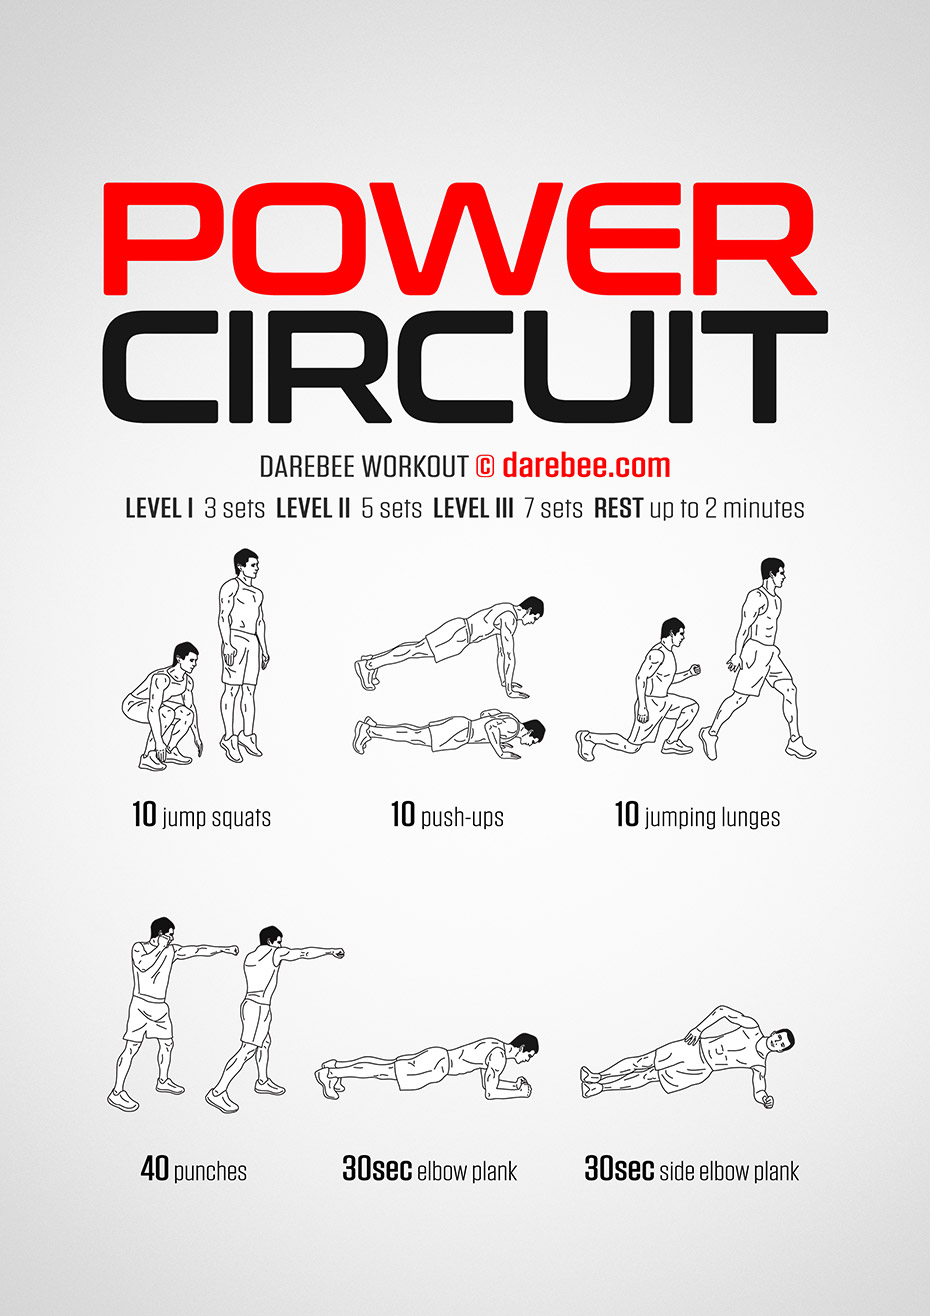 Power Circuit Workout